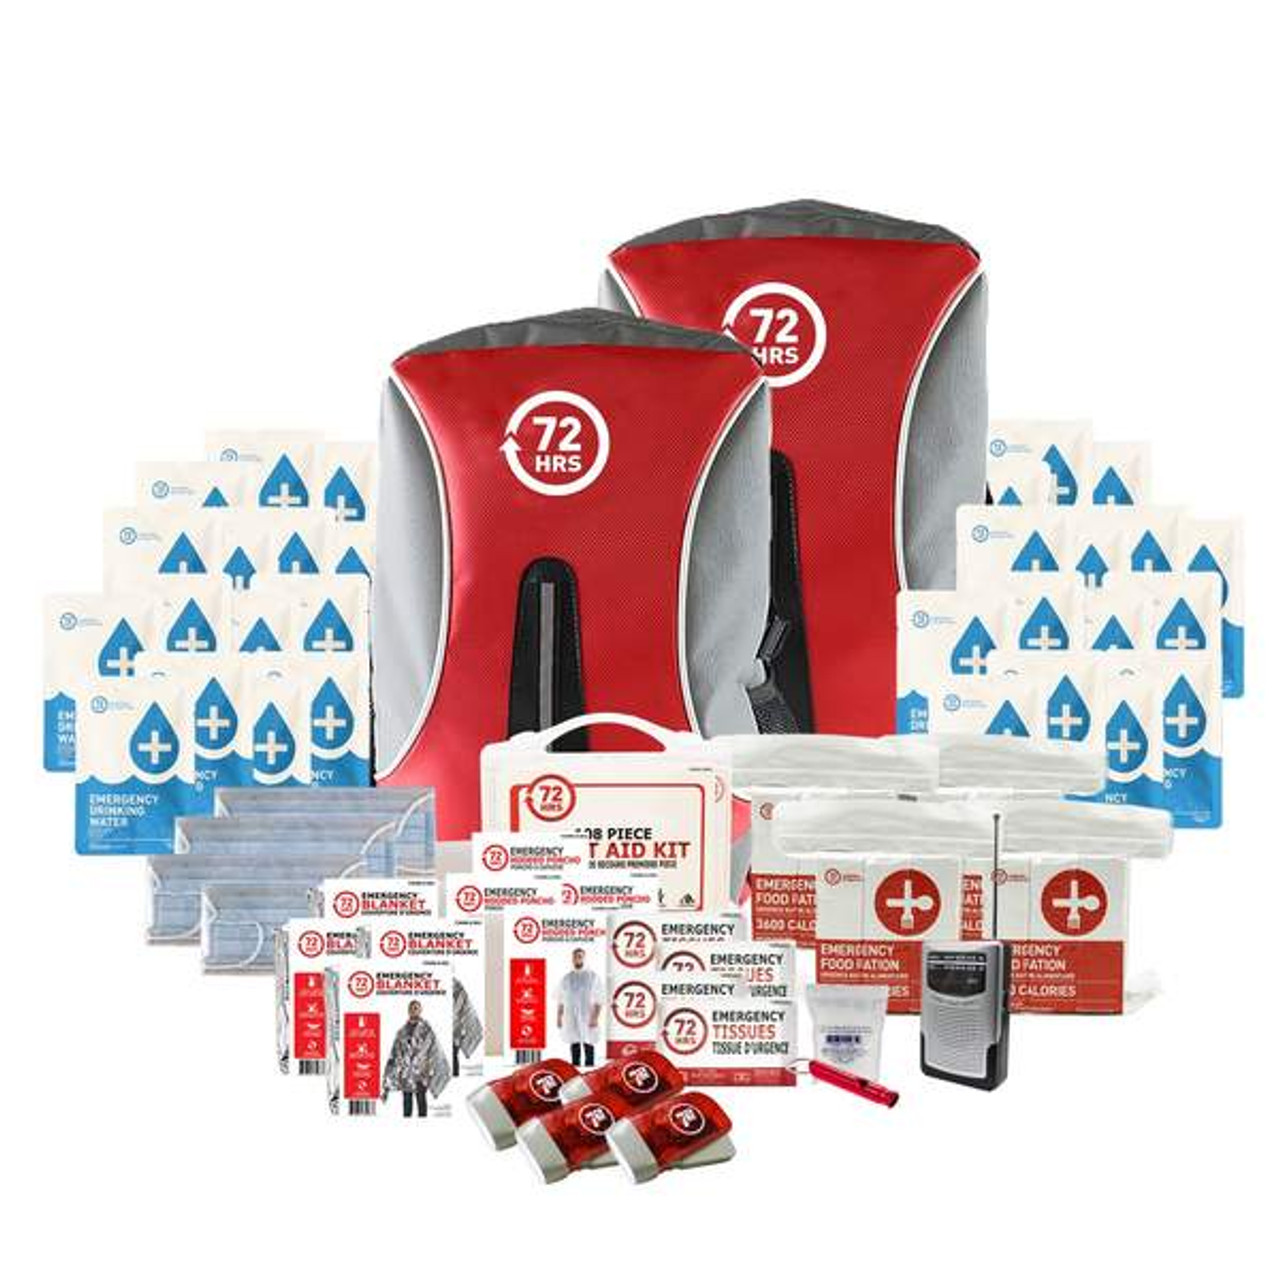 4 Person 72HRS Essential Backpack - Emergency Survival Kit